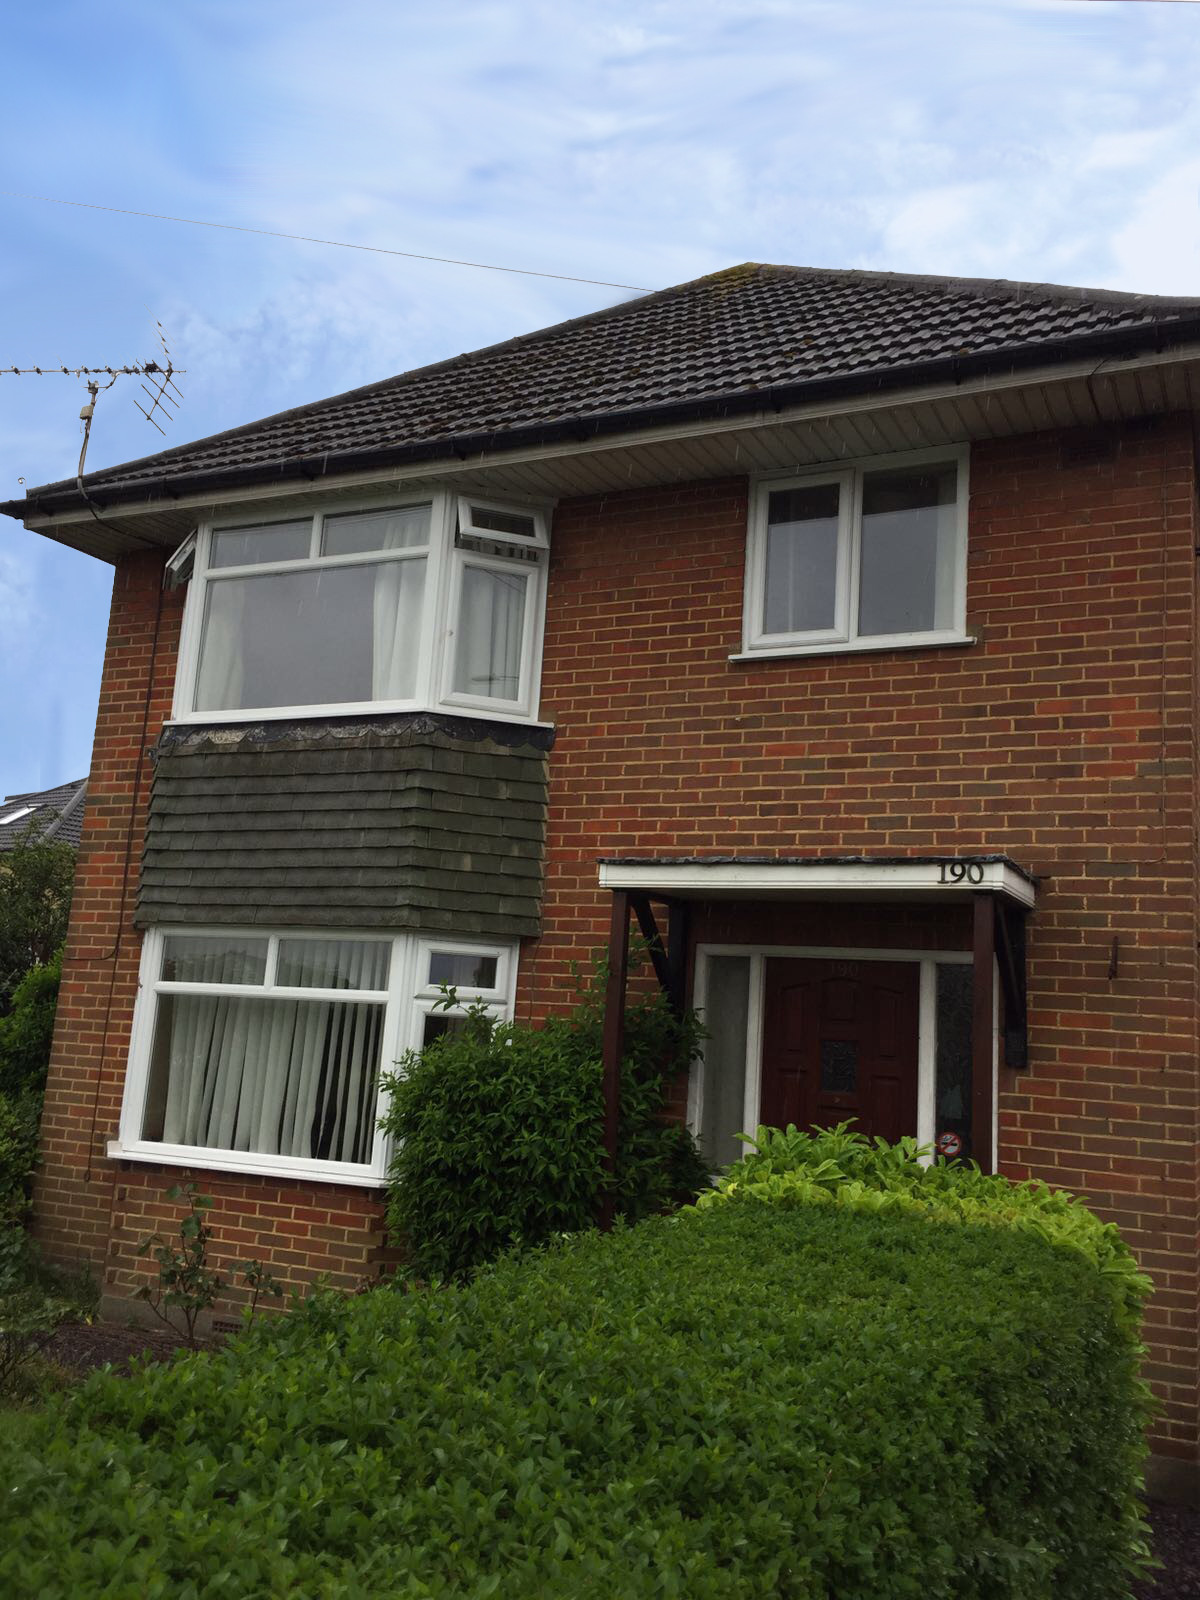 House Extension Approved in Bournemouth